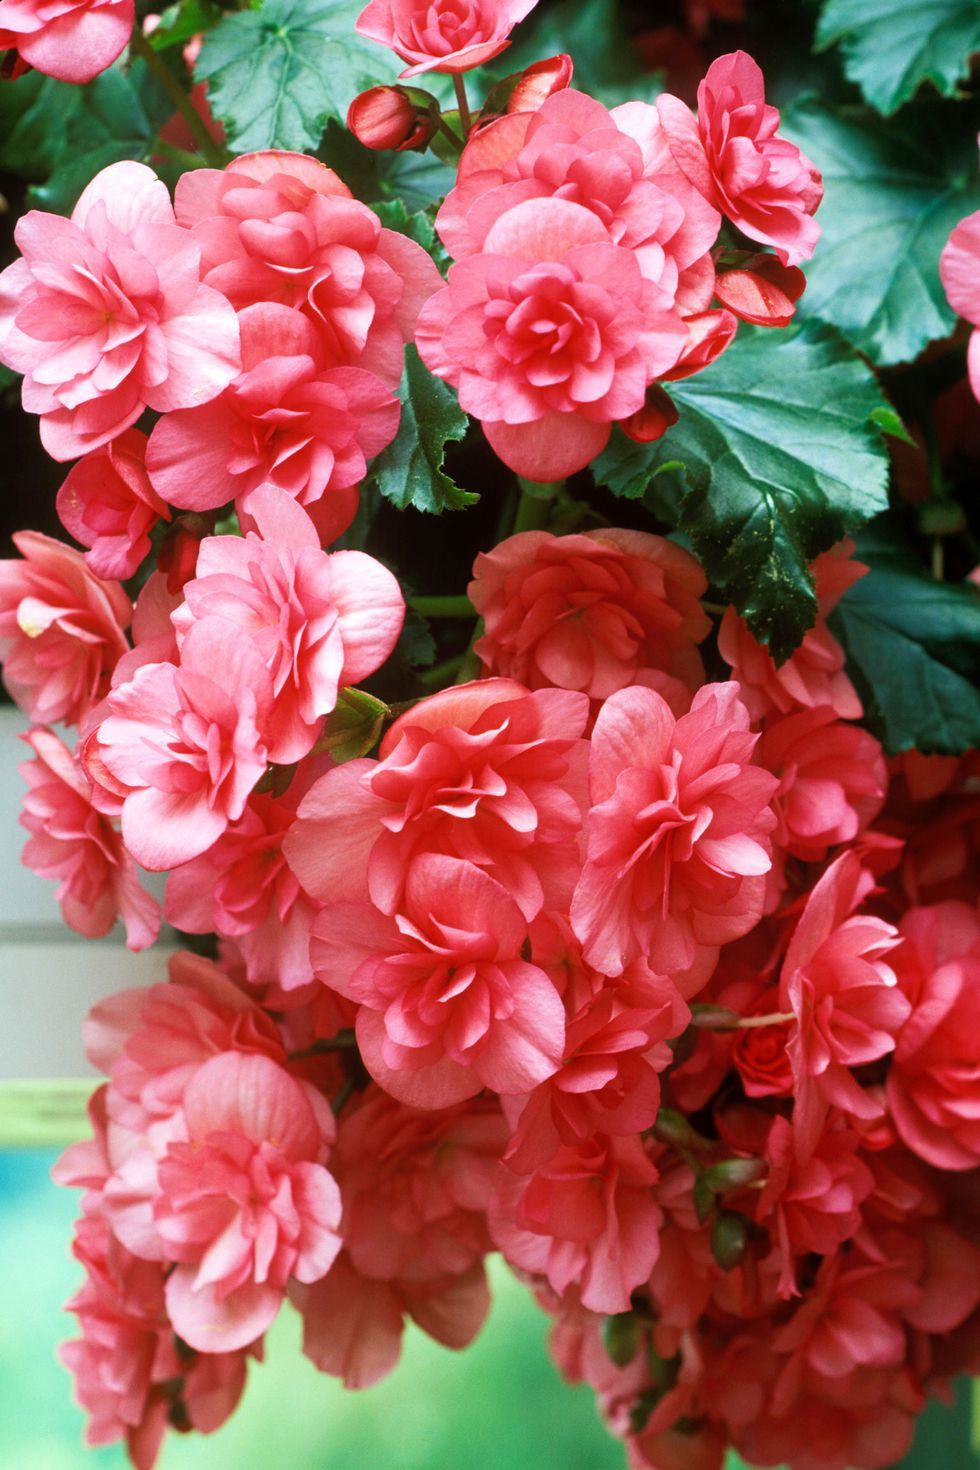 Begonia Low Maintenance Indoor Plants Indoor Flowering Plants House Plants